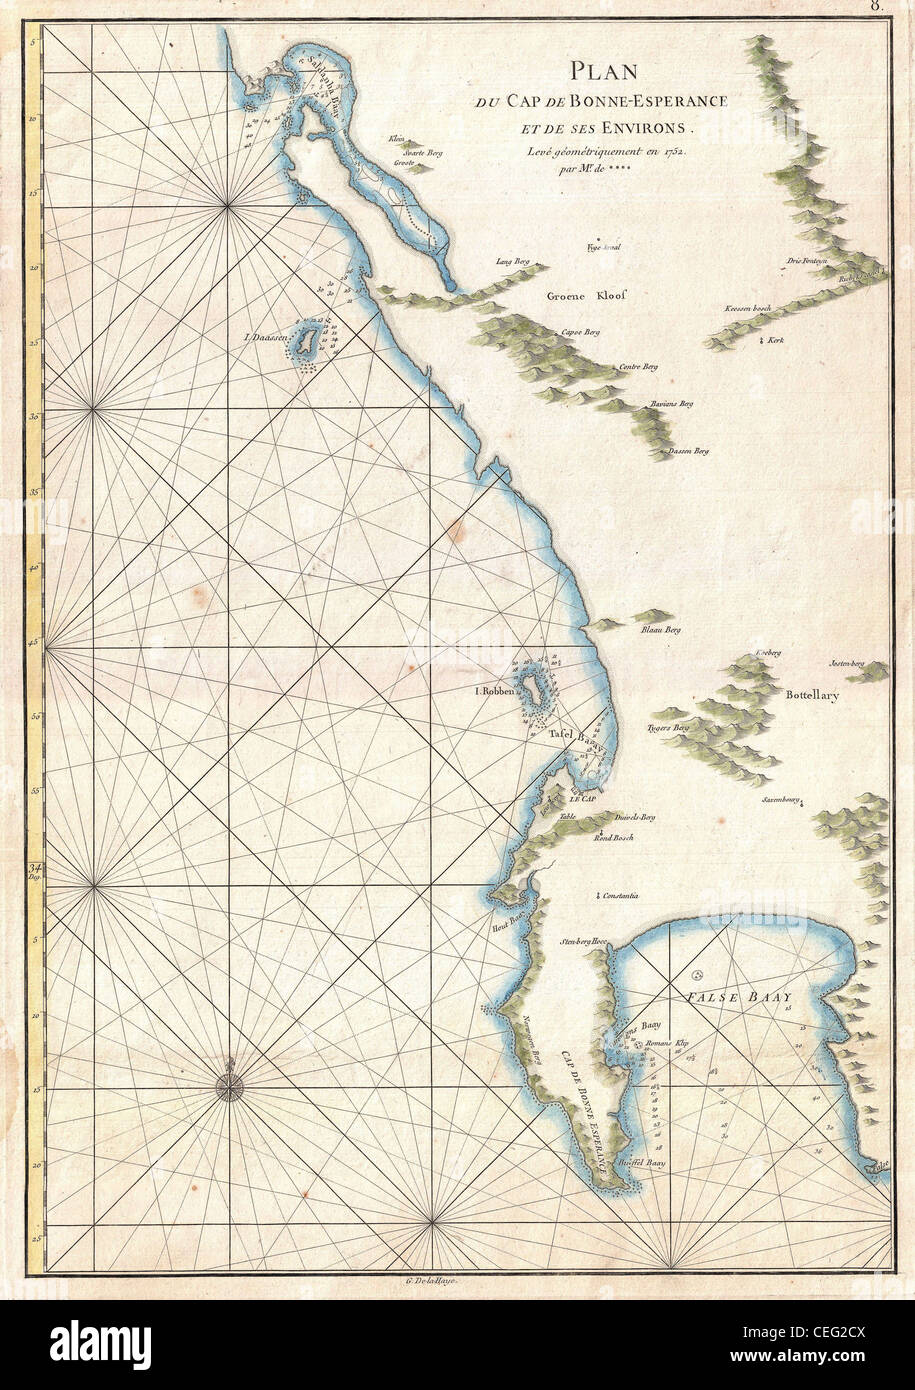 1775 Mannevillette Map Of The Cape Of Good Hope South Africa Stock